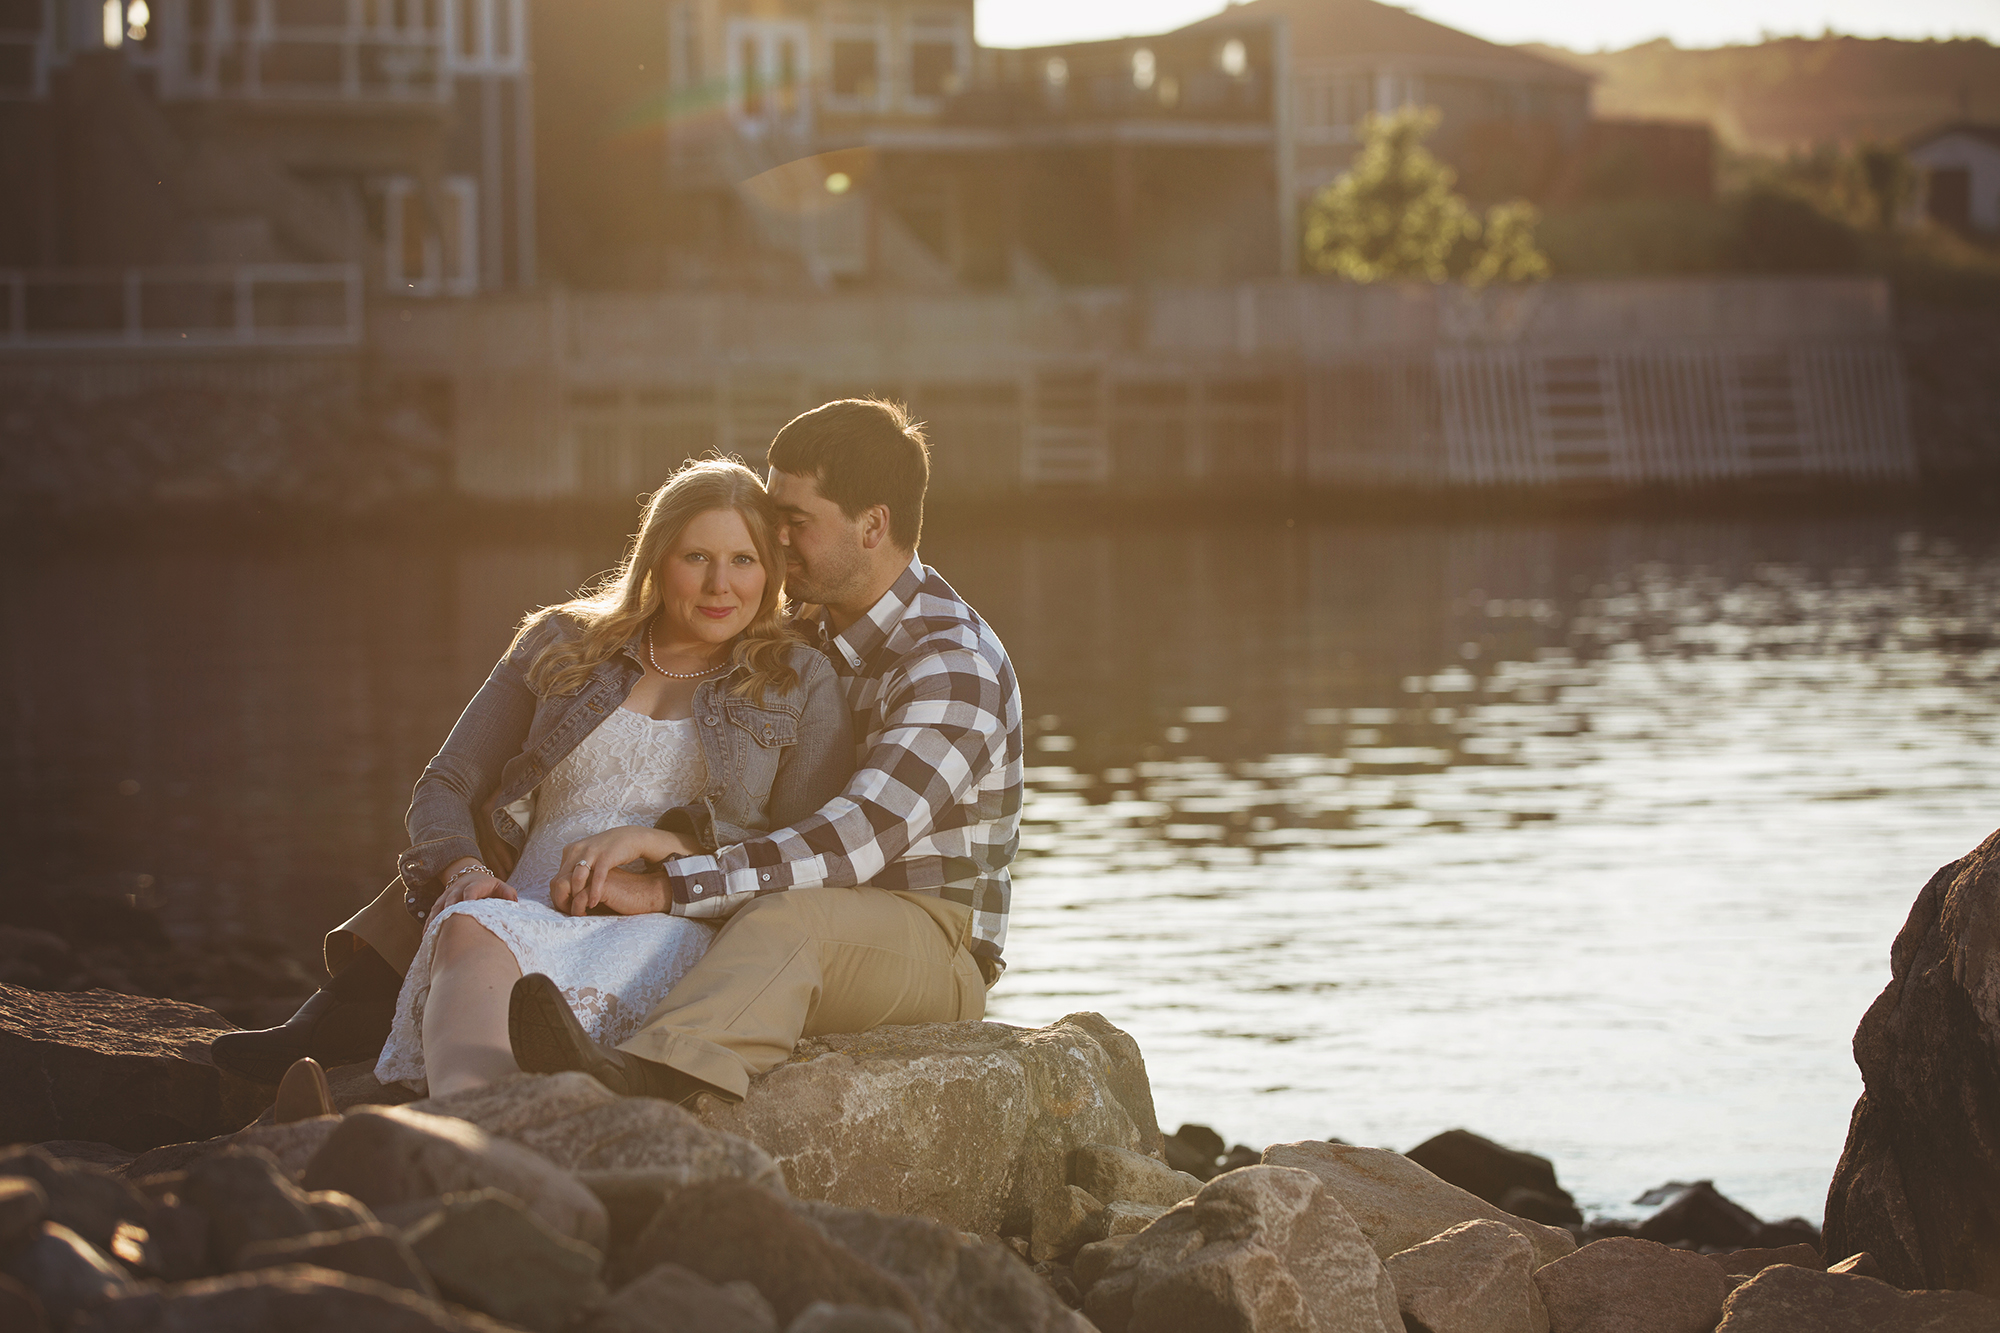 J&M Engagement 2015 (73 of 82).jpg